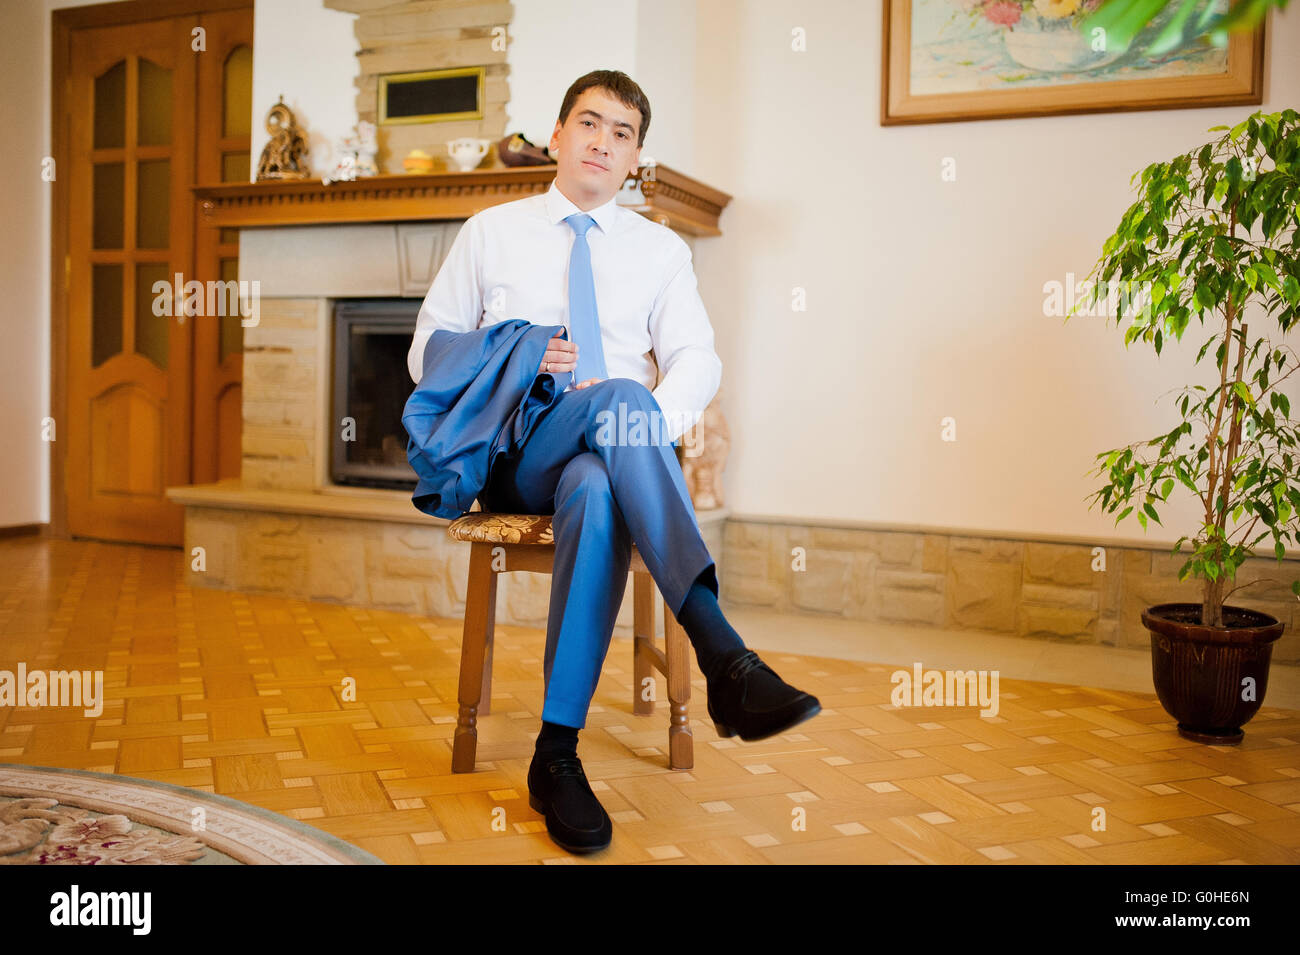 groom  gets dressed in formal wear and blue suit - Stock Image